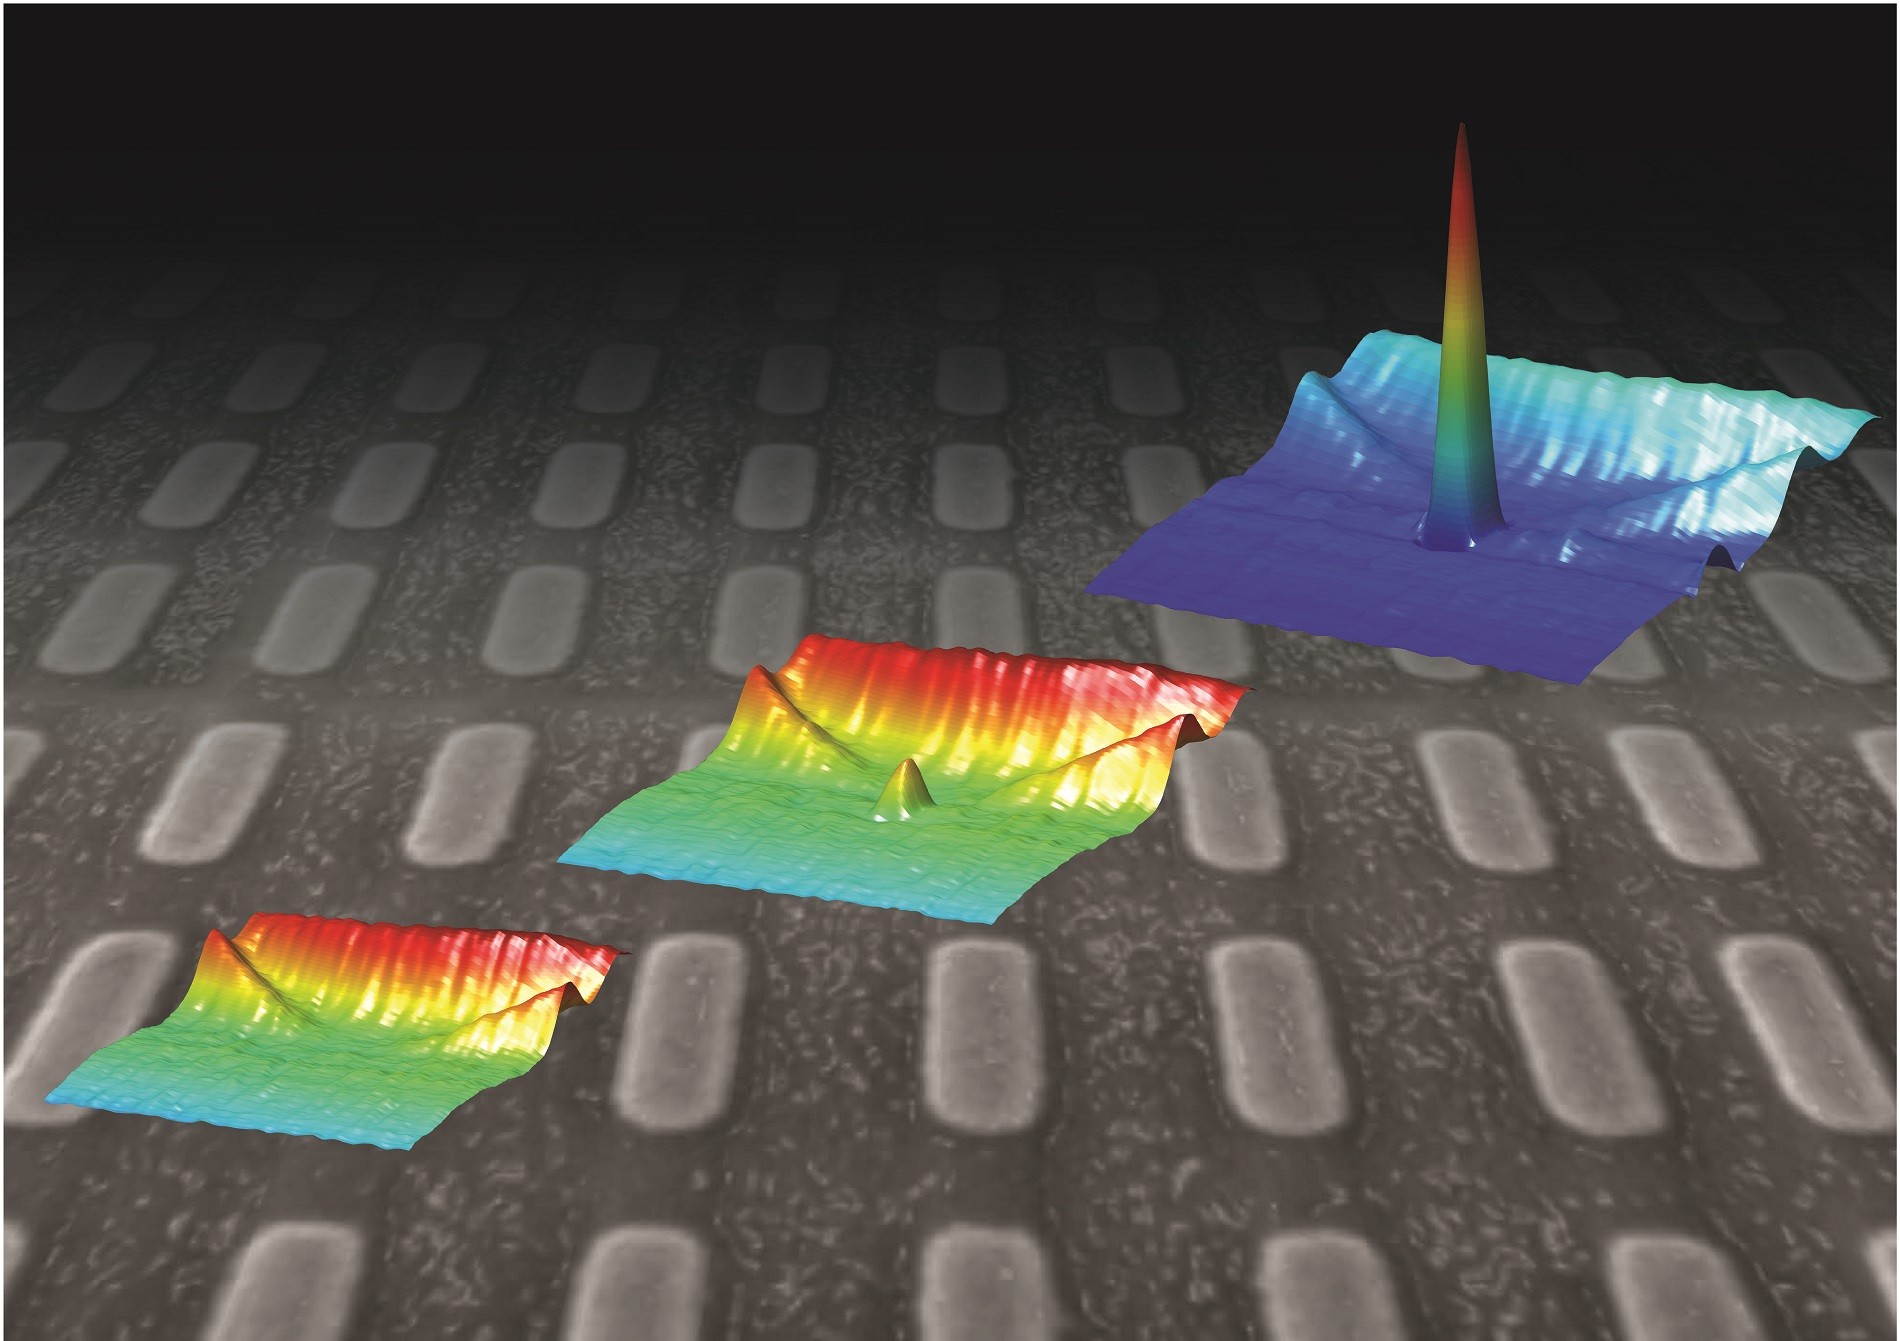 Researchers create nanoscale laser at room temperature